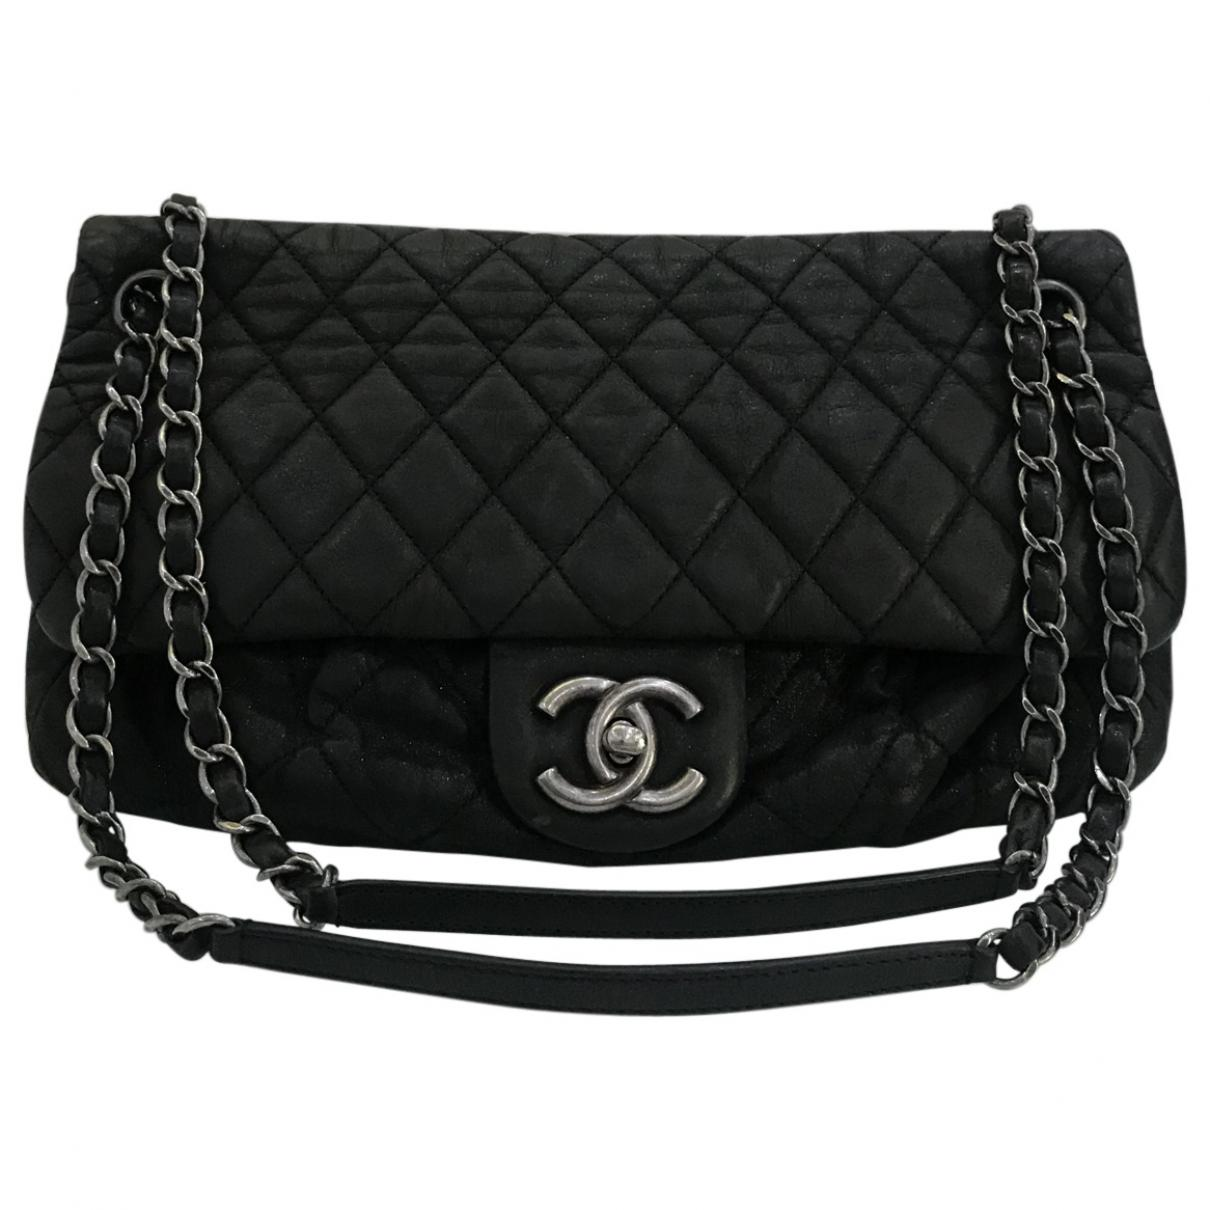 99caafbea568 Lyst - Chanel Timeless Leather Handbag in Black